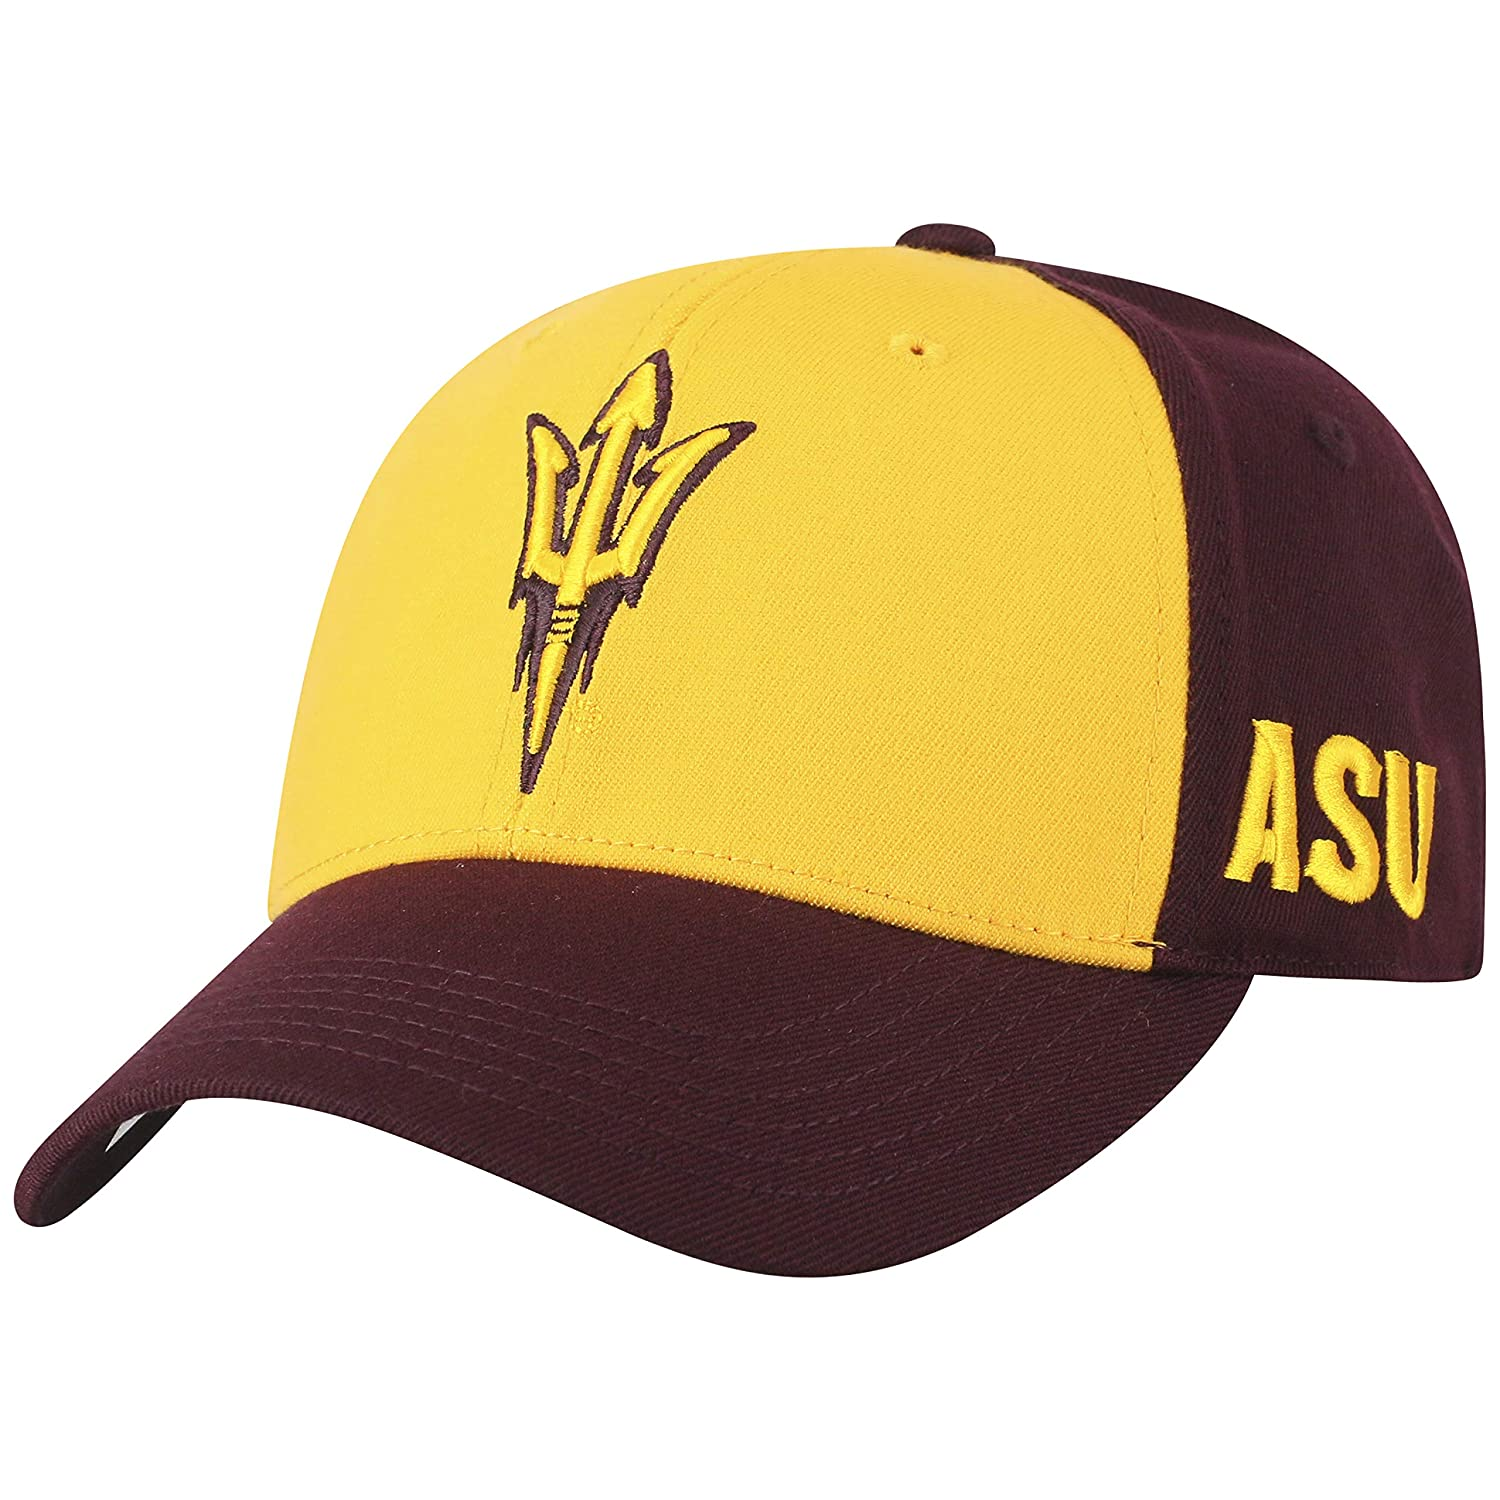 3637dbf01 Top of the World NCAA-Premium 2 Tone with Team Colors-One-Fit-Memory  Fit-Hat Cap